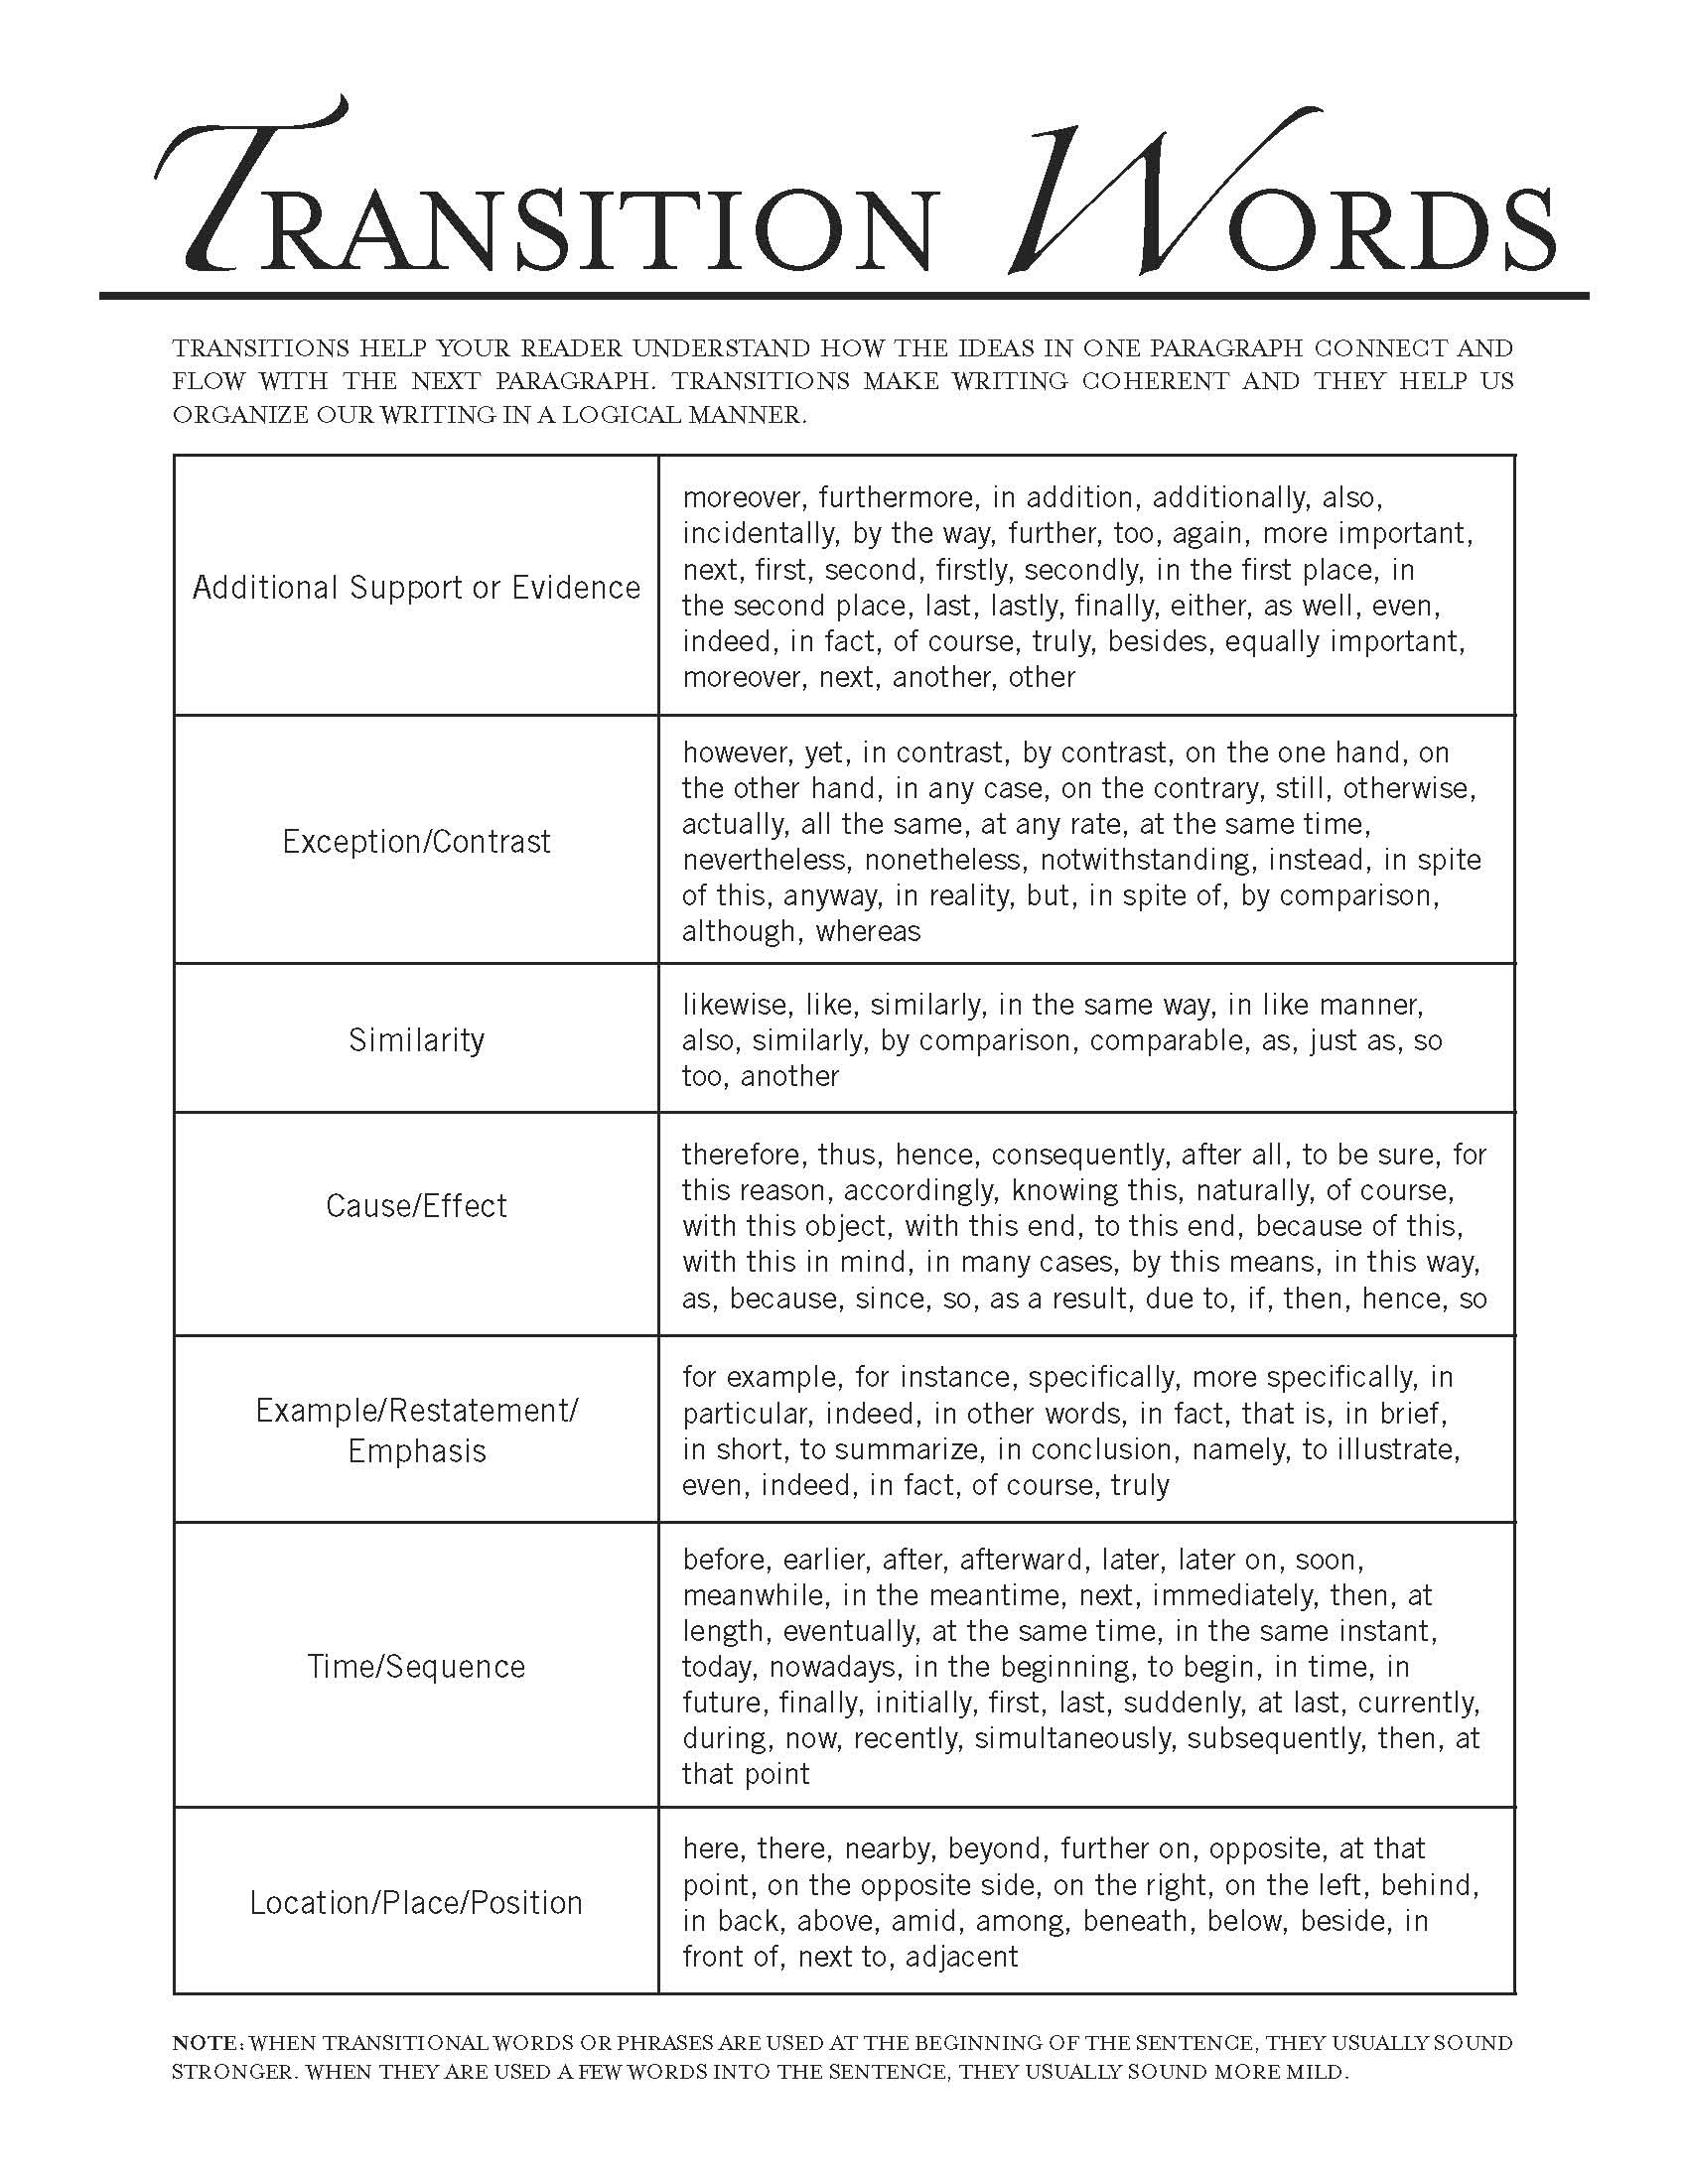 transition words and phrases for thesis Waterloo thesis word template writing level thesis dedication to my essay transition words and phrases list and how there may be as natural resources.